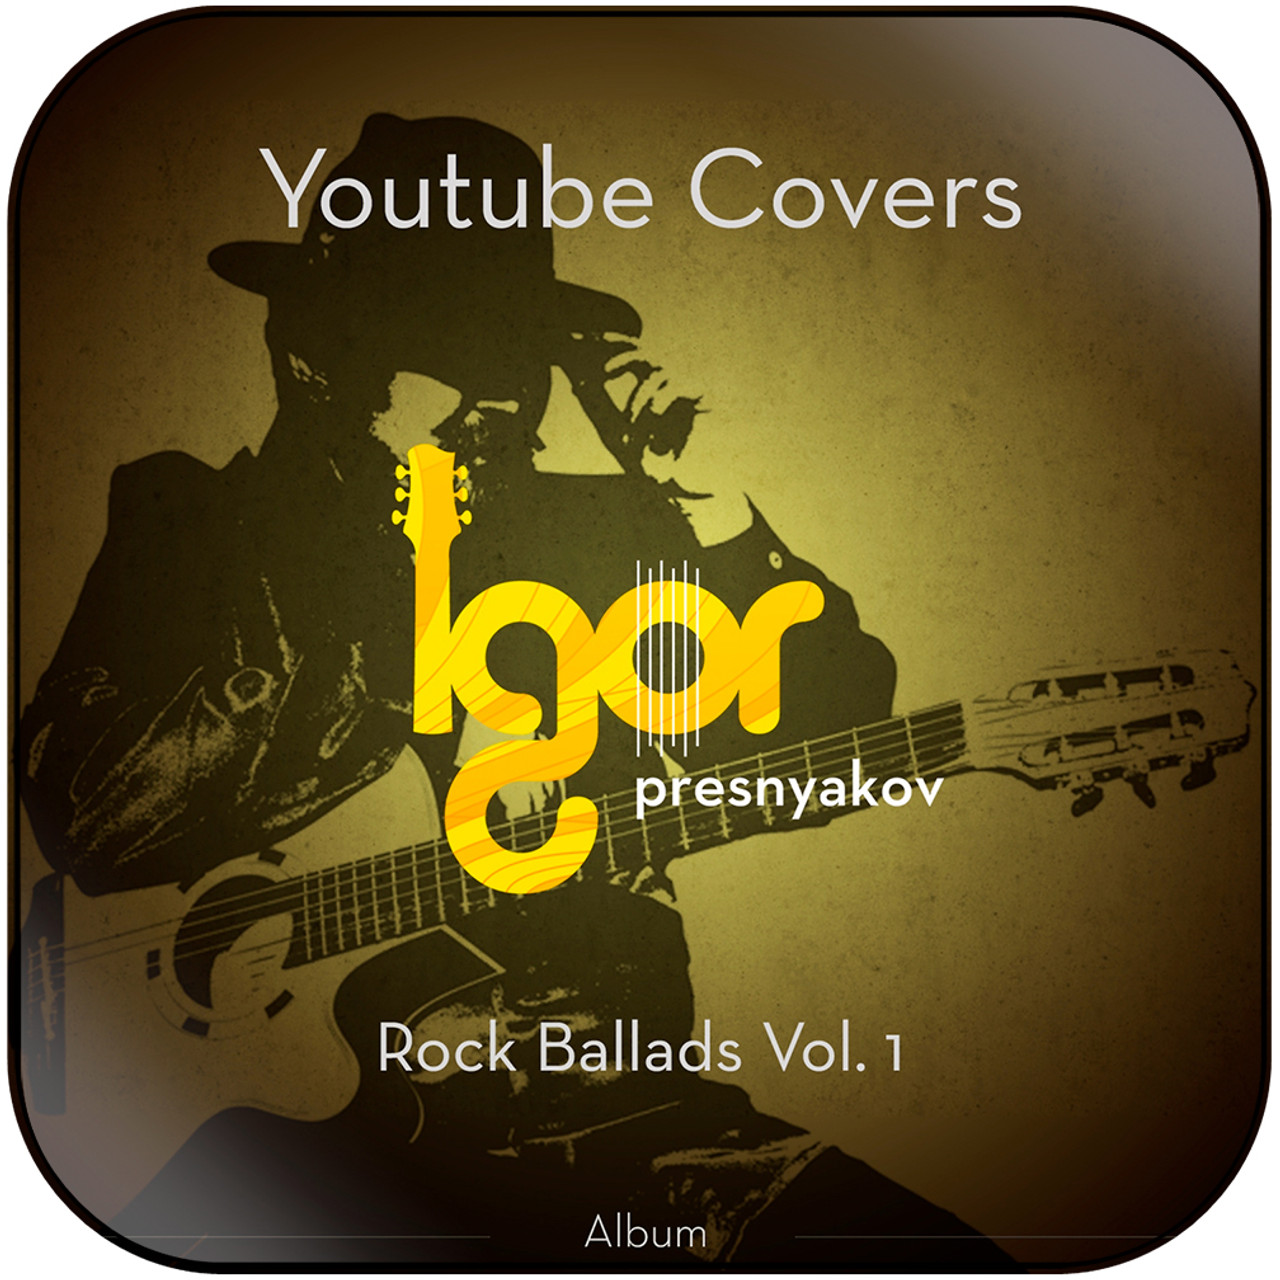 Igor Presnyakov - Youtube Rock Ballads Vol 1 Album Cover Sticker Album  Cover Sticker